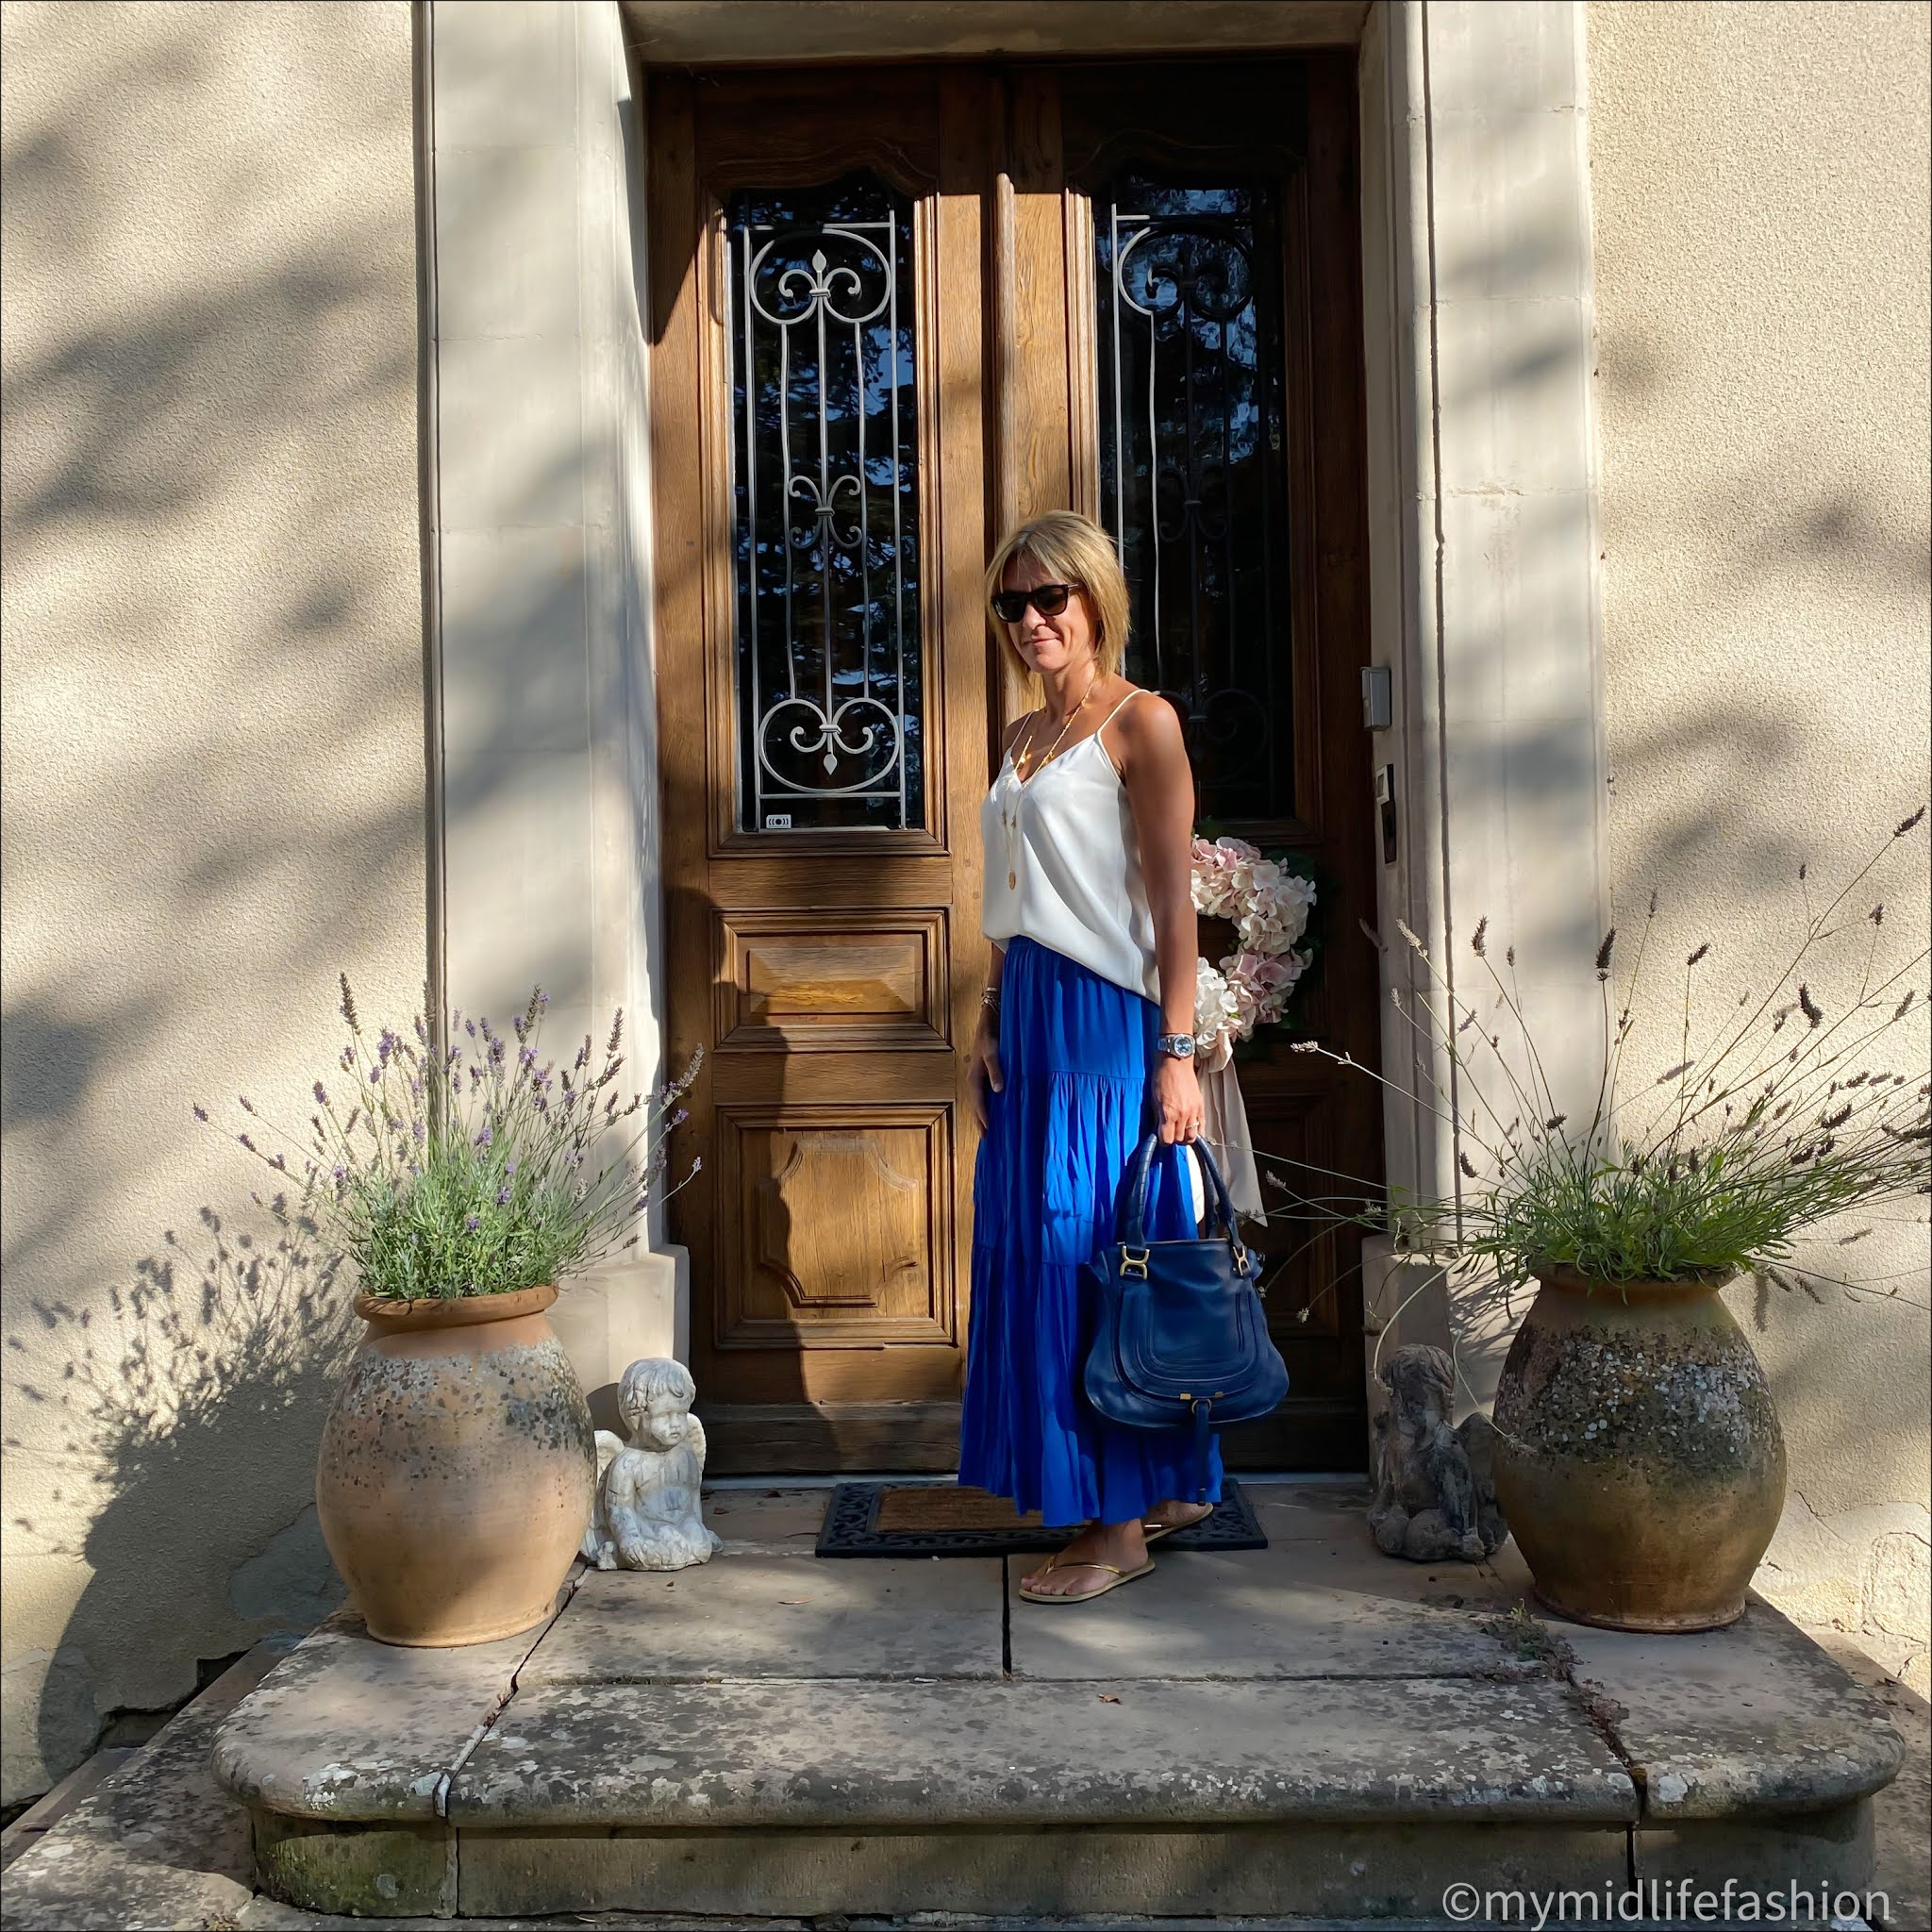 my midlife fashion, tom ford sunglasses, ashiana coin necklace, mango camisole top, h and m bright blue long skirt, Chloe marcie bag, Carvela leather thong sandals